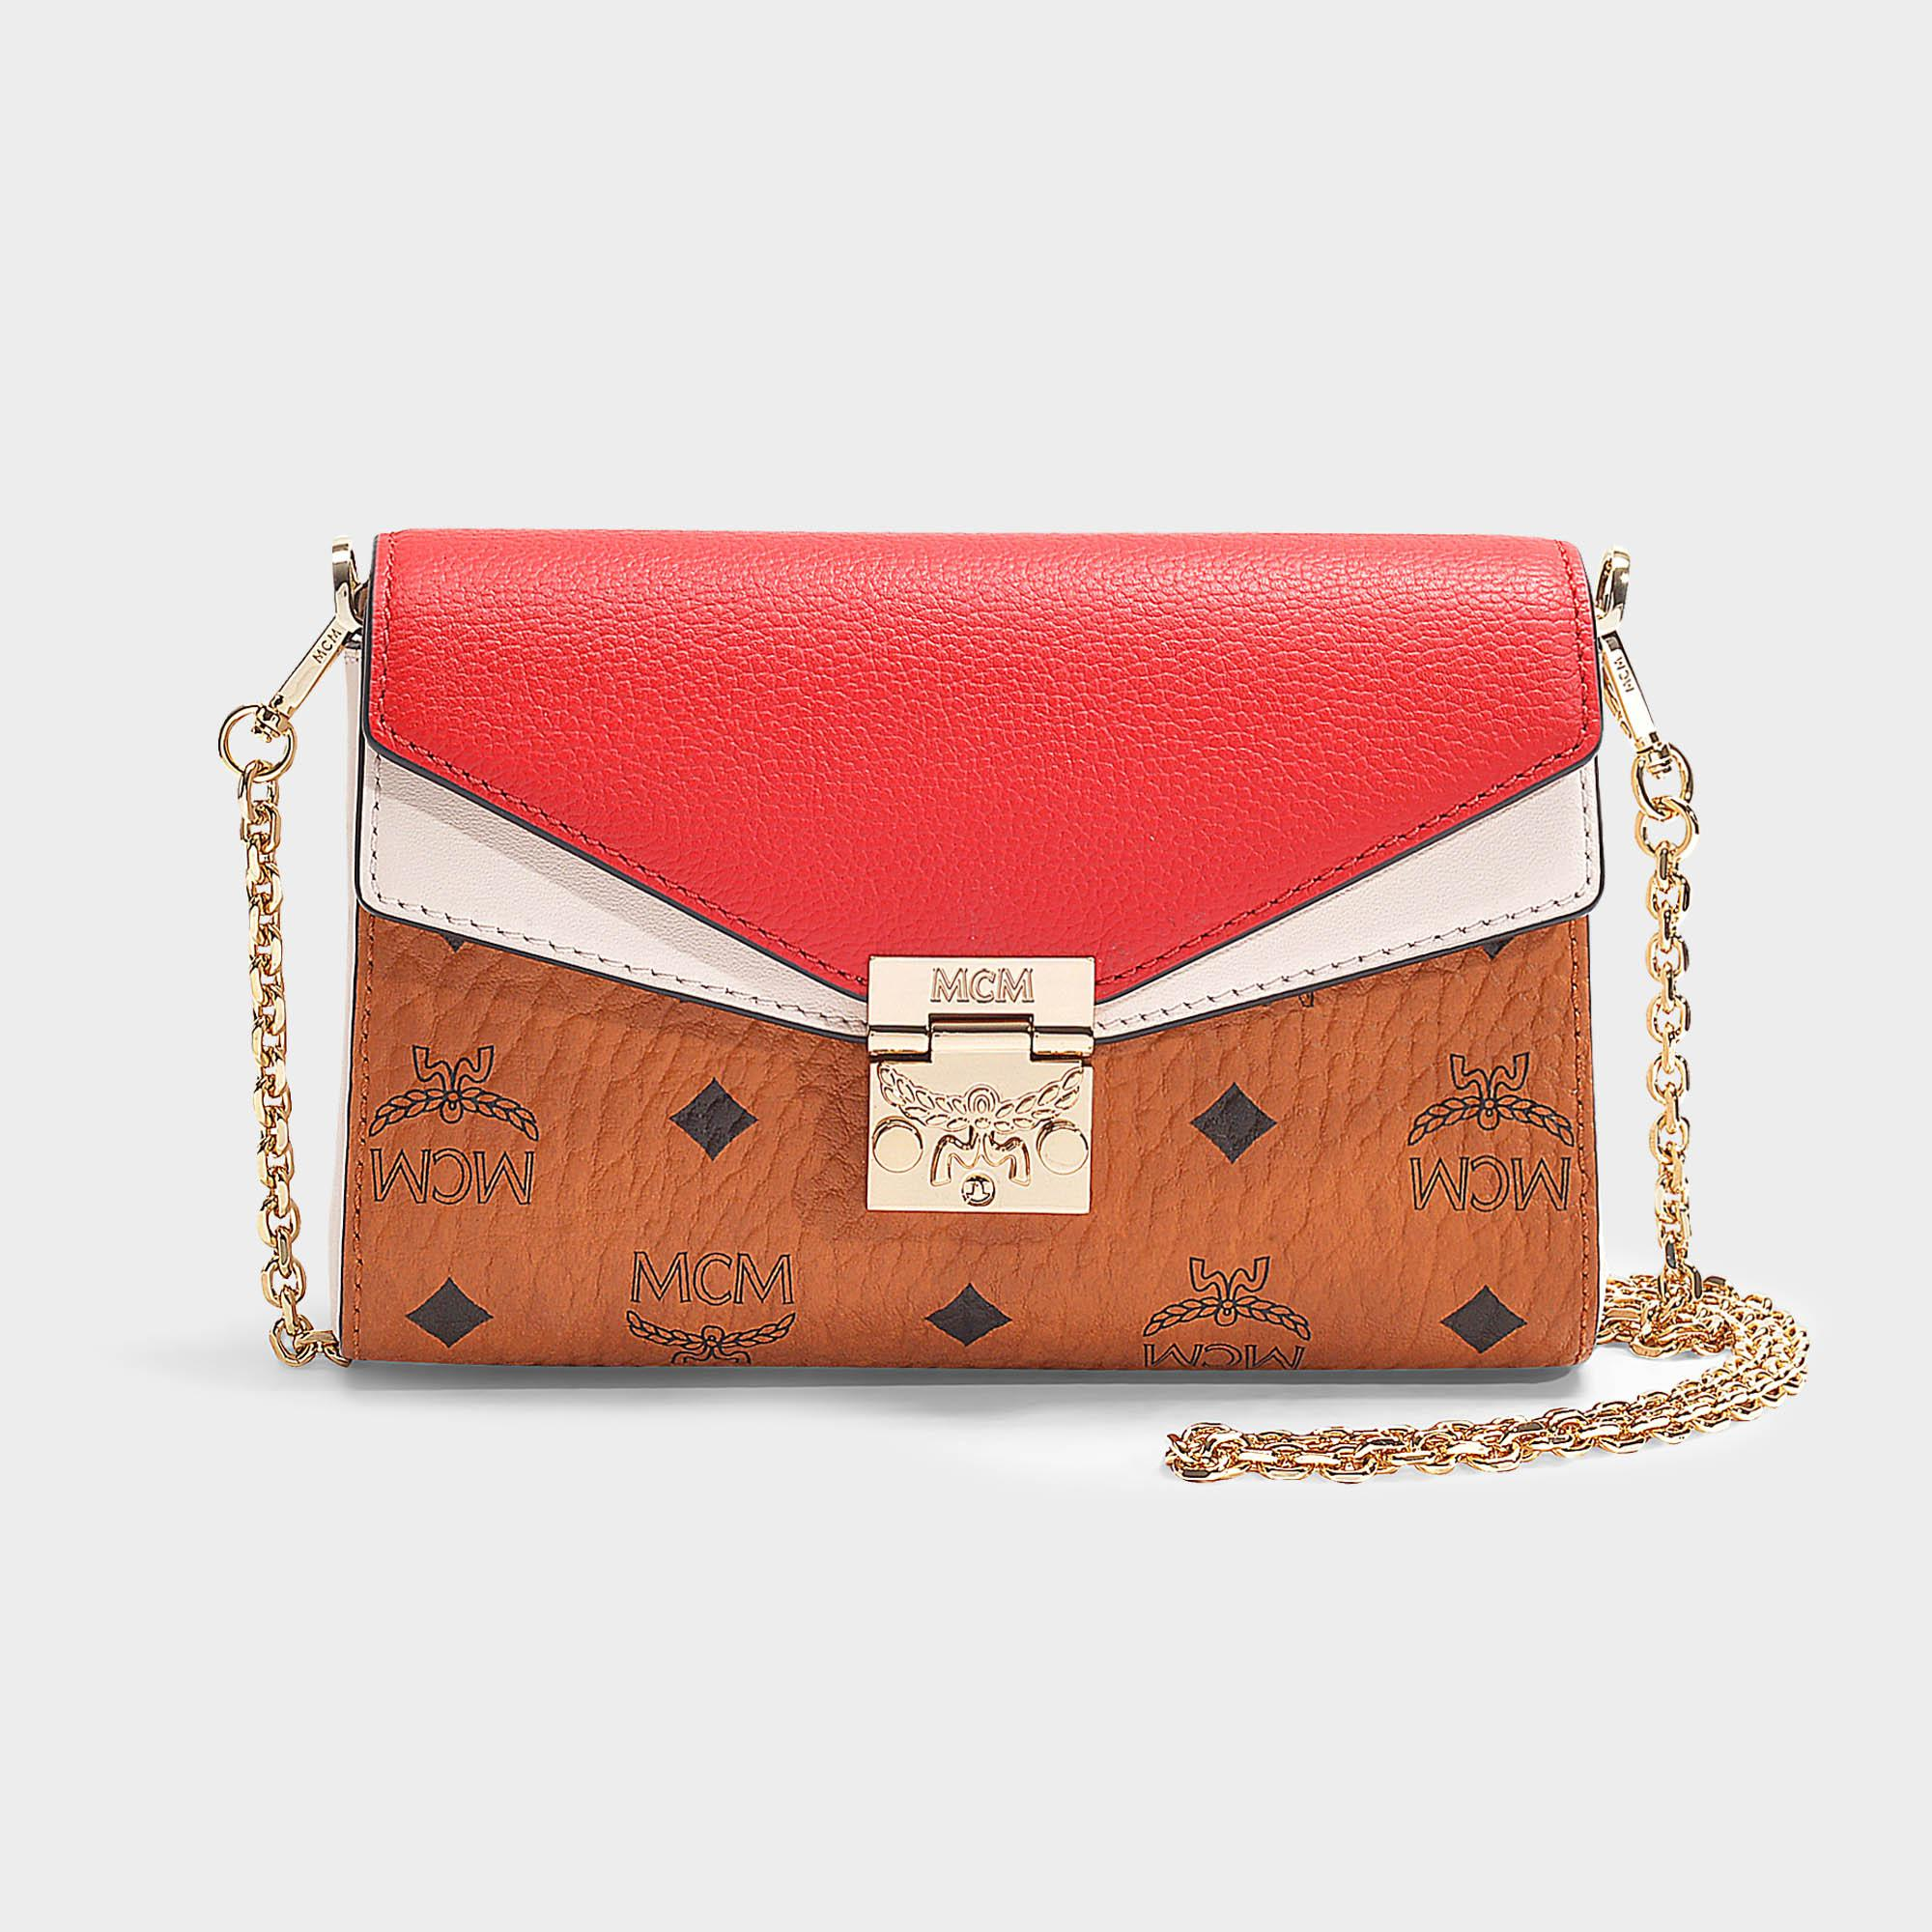 ff5a90aff2 MCM - Millie Visetos Leather Block Small Crossbody Bag In Cognac And Red Coated  Canvas -. View fullscreen